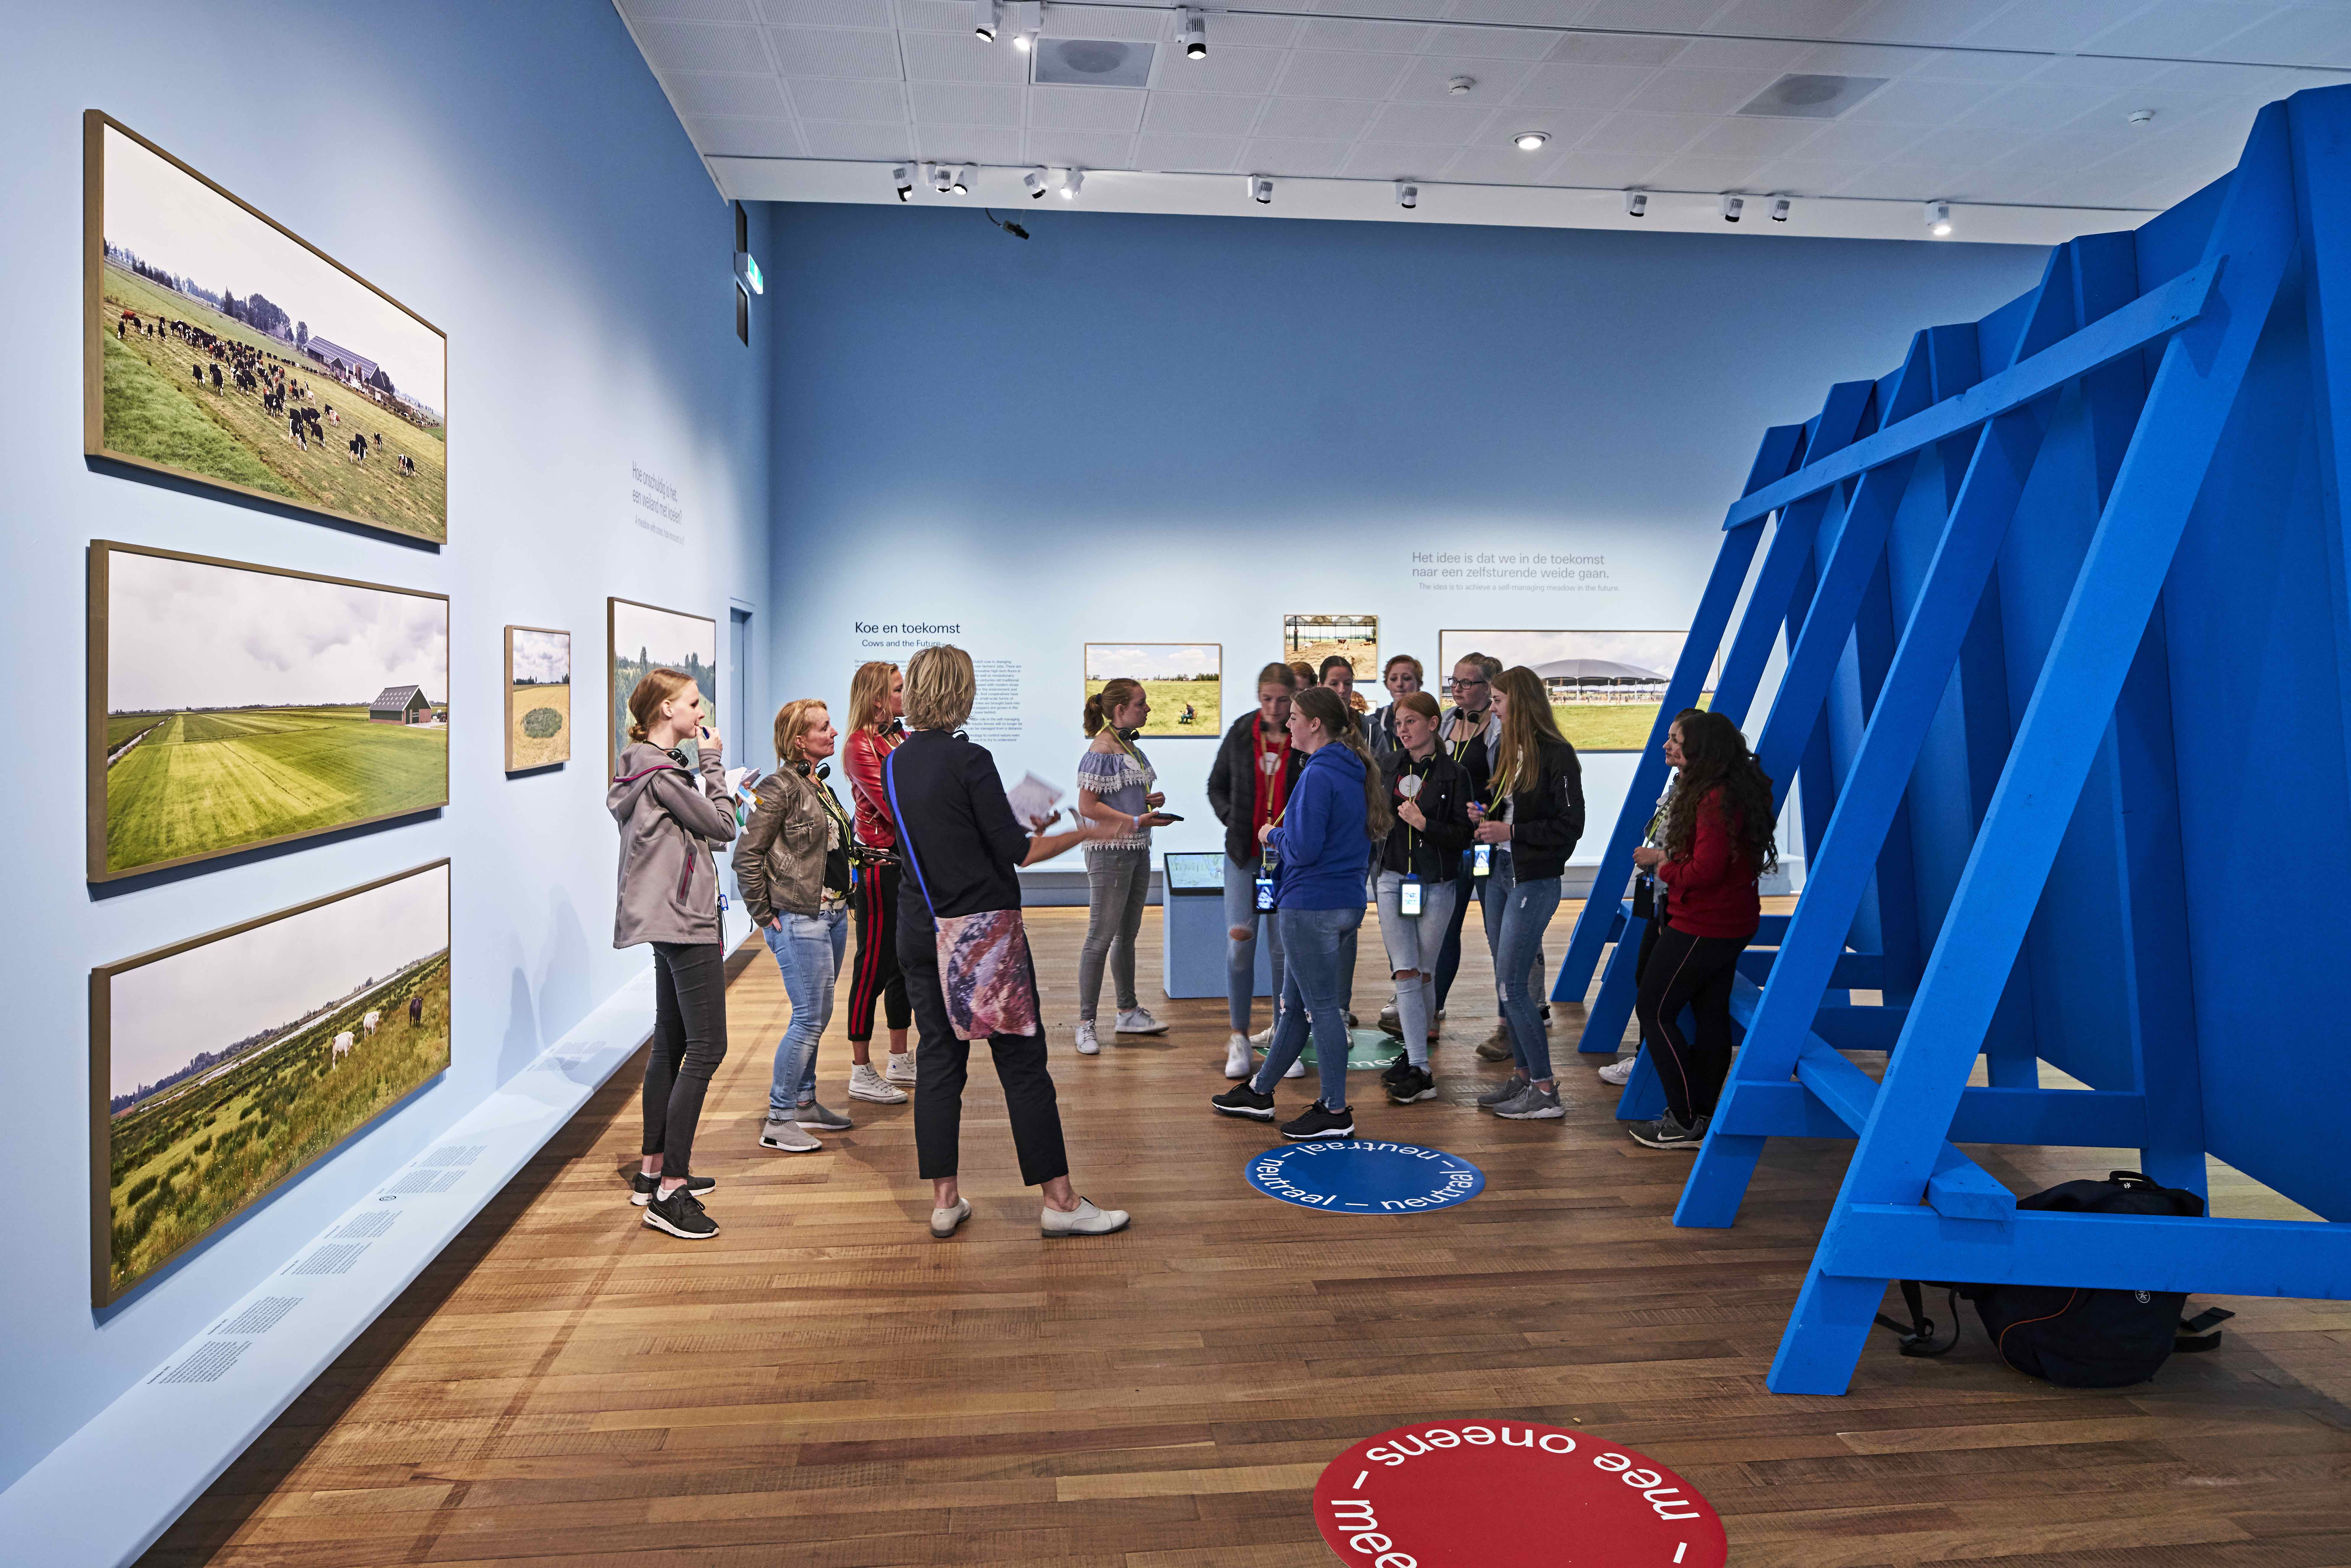 The exhibition is accompanied by an audiotour and an educational programme.